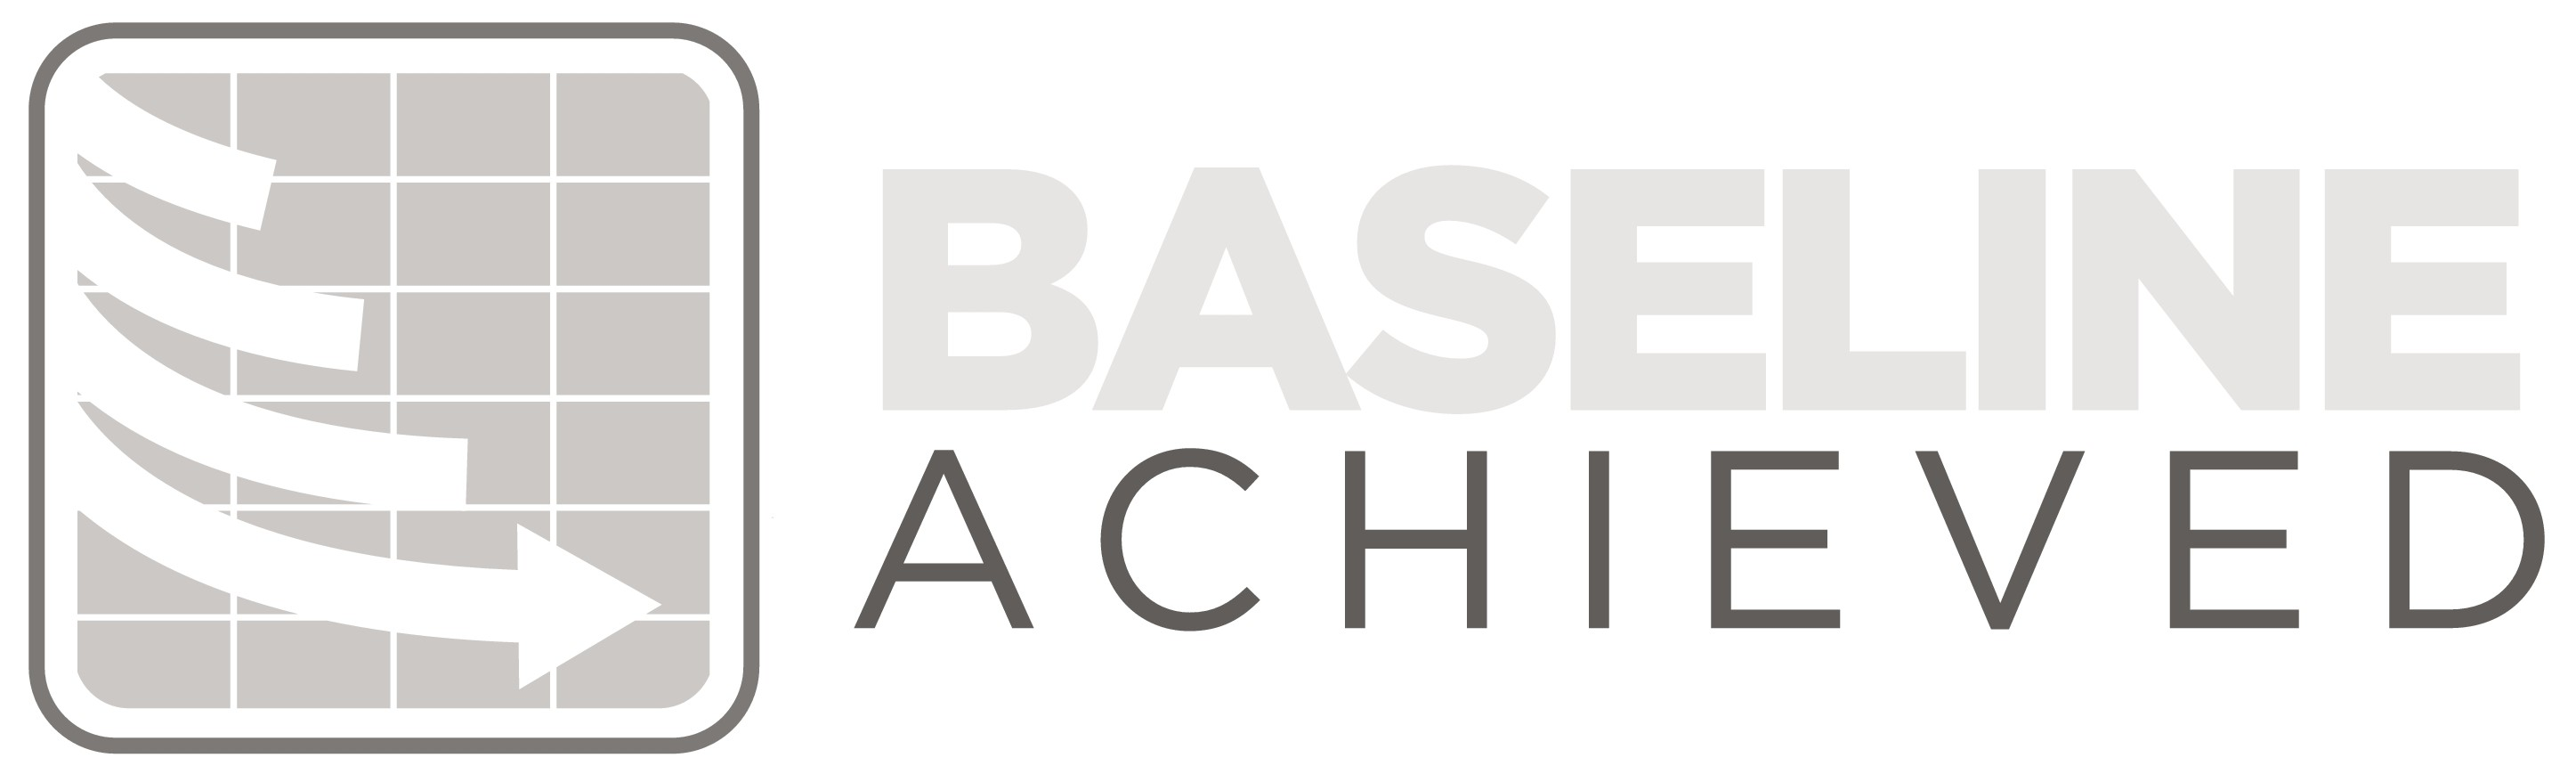 Create a professional logo for project management consulting business Baseline Achieved